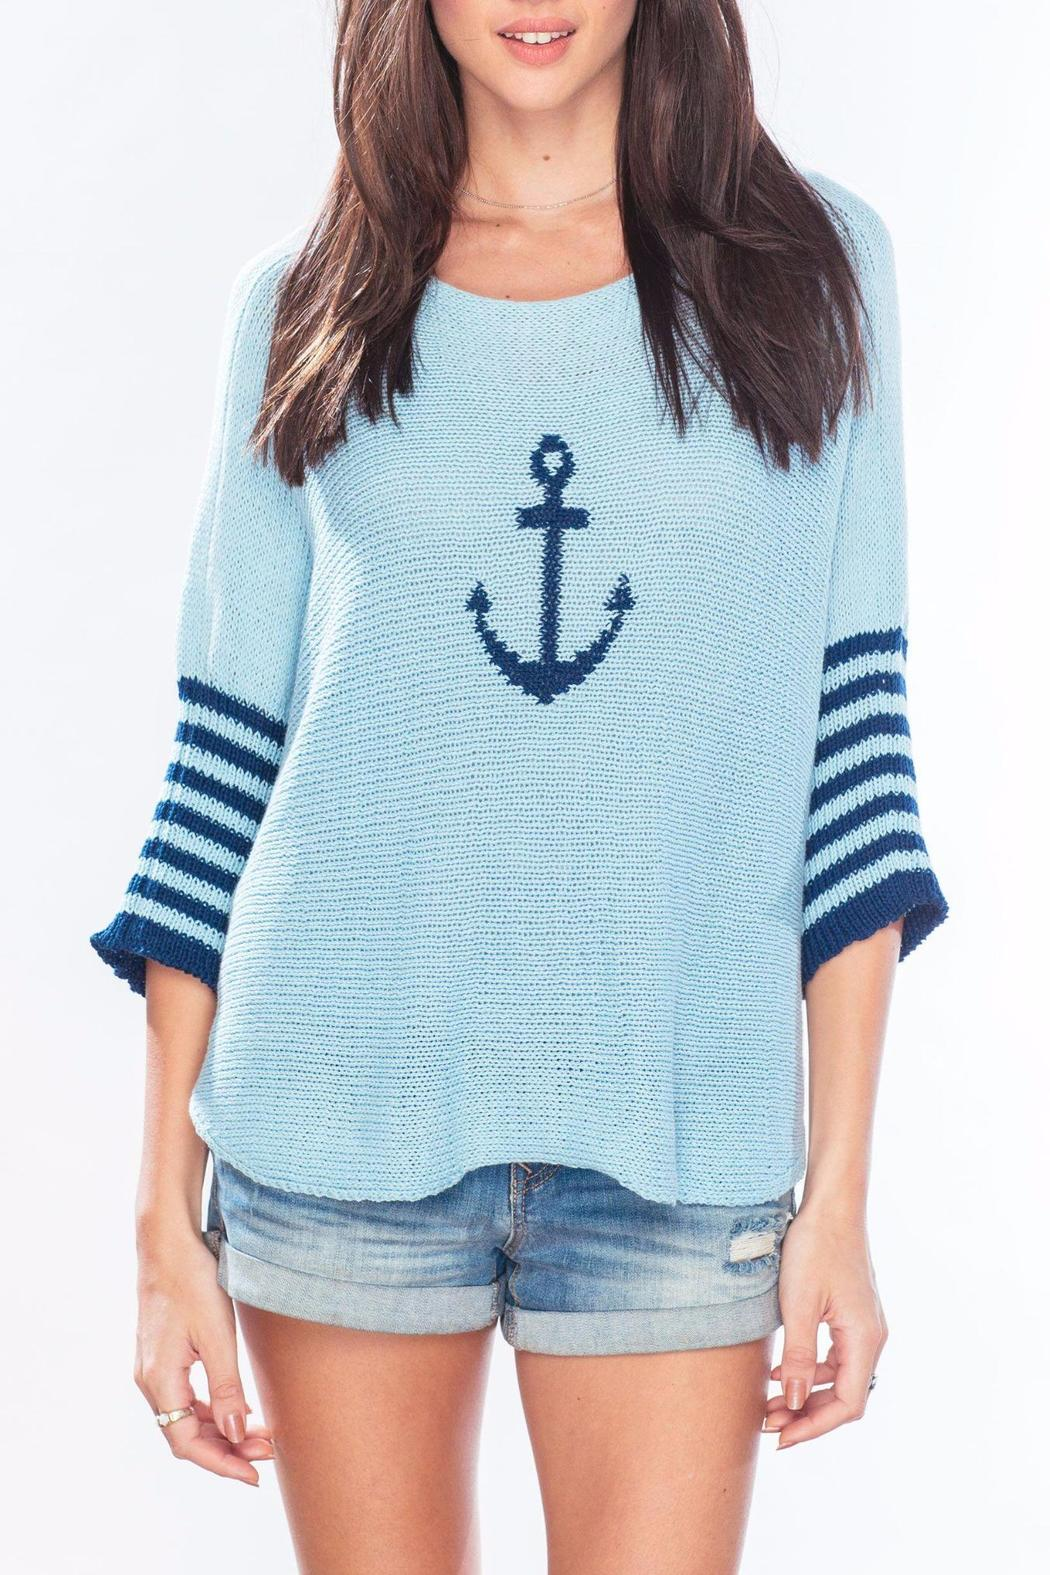 Anchor blue clothing store online